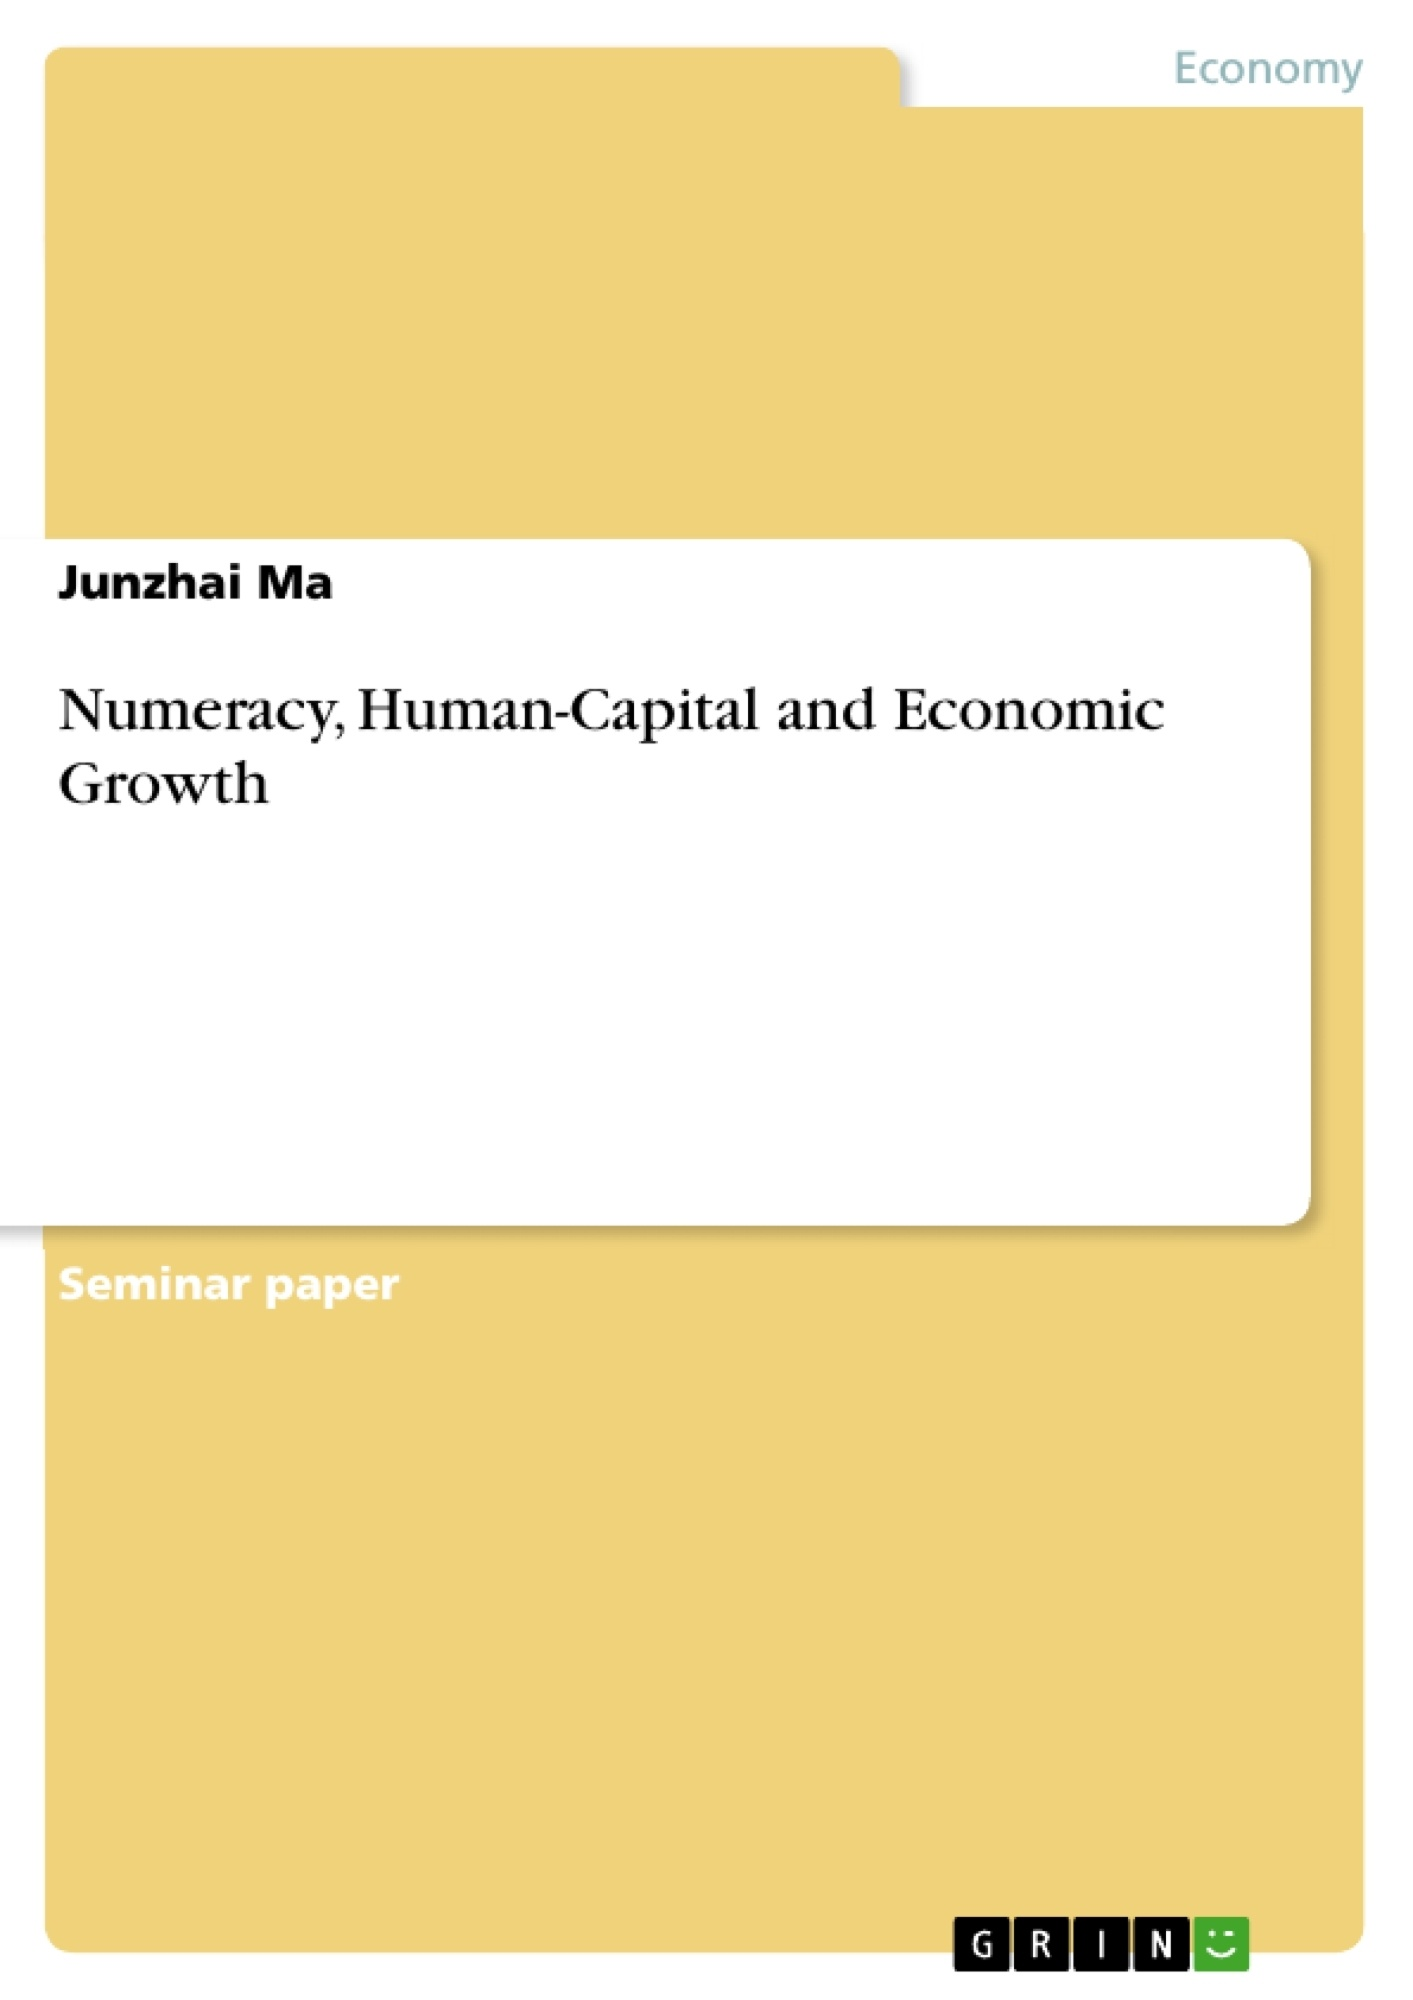 Title: Numeracy, Human-Capital and Economic Growth